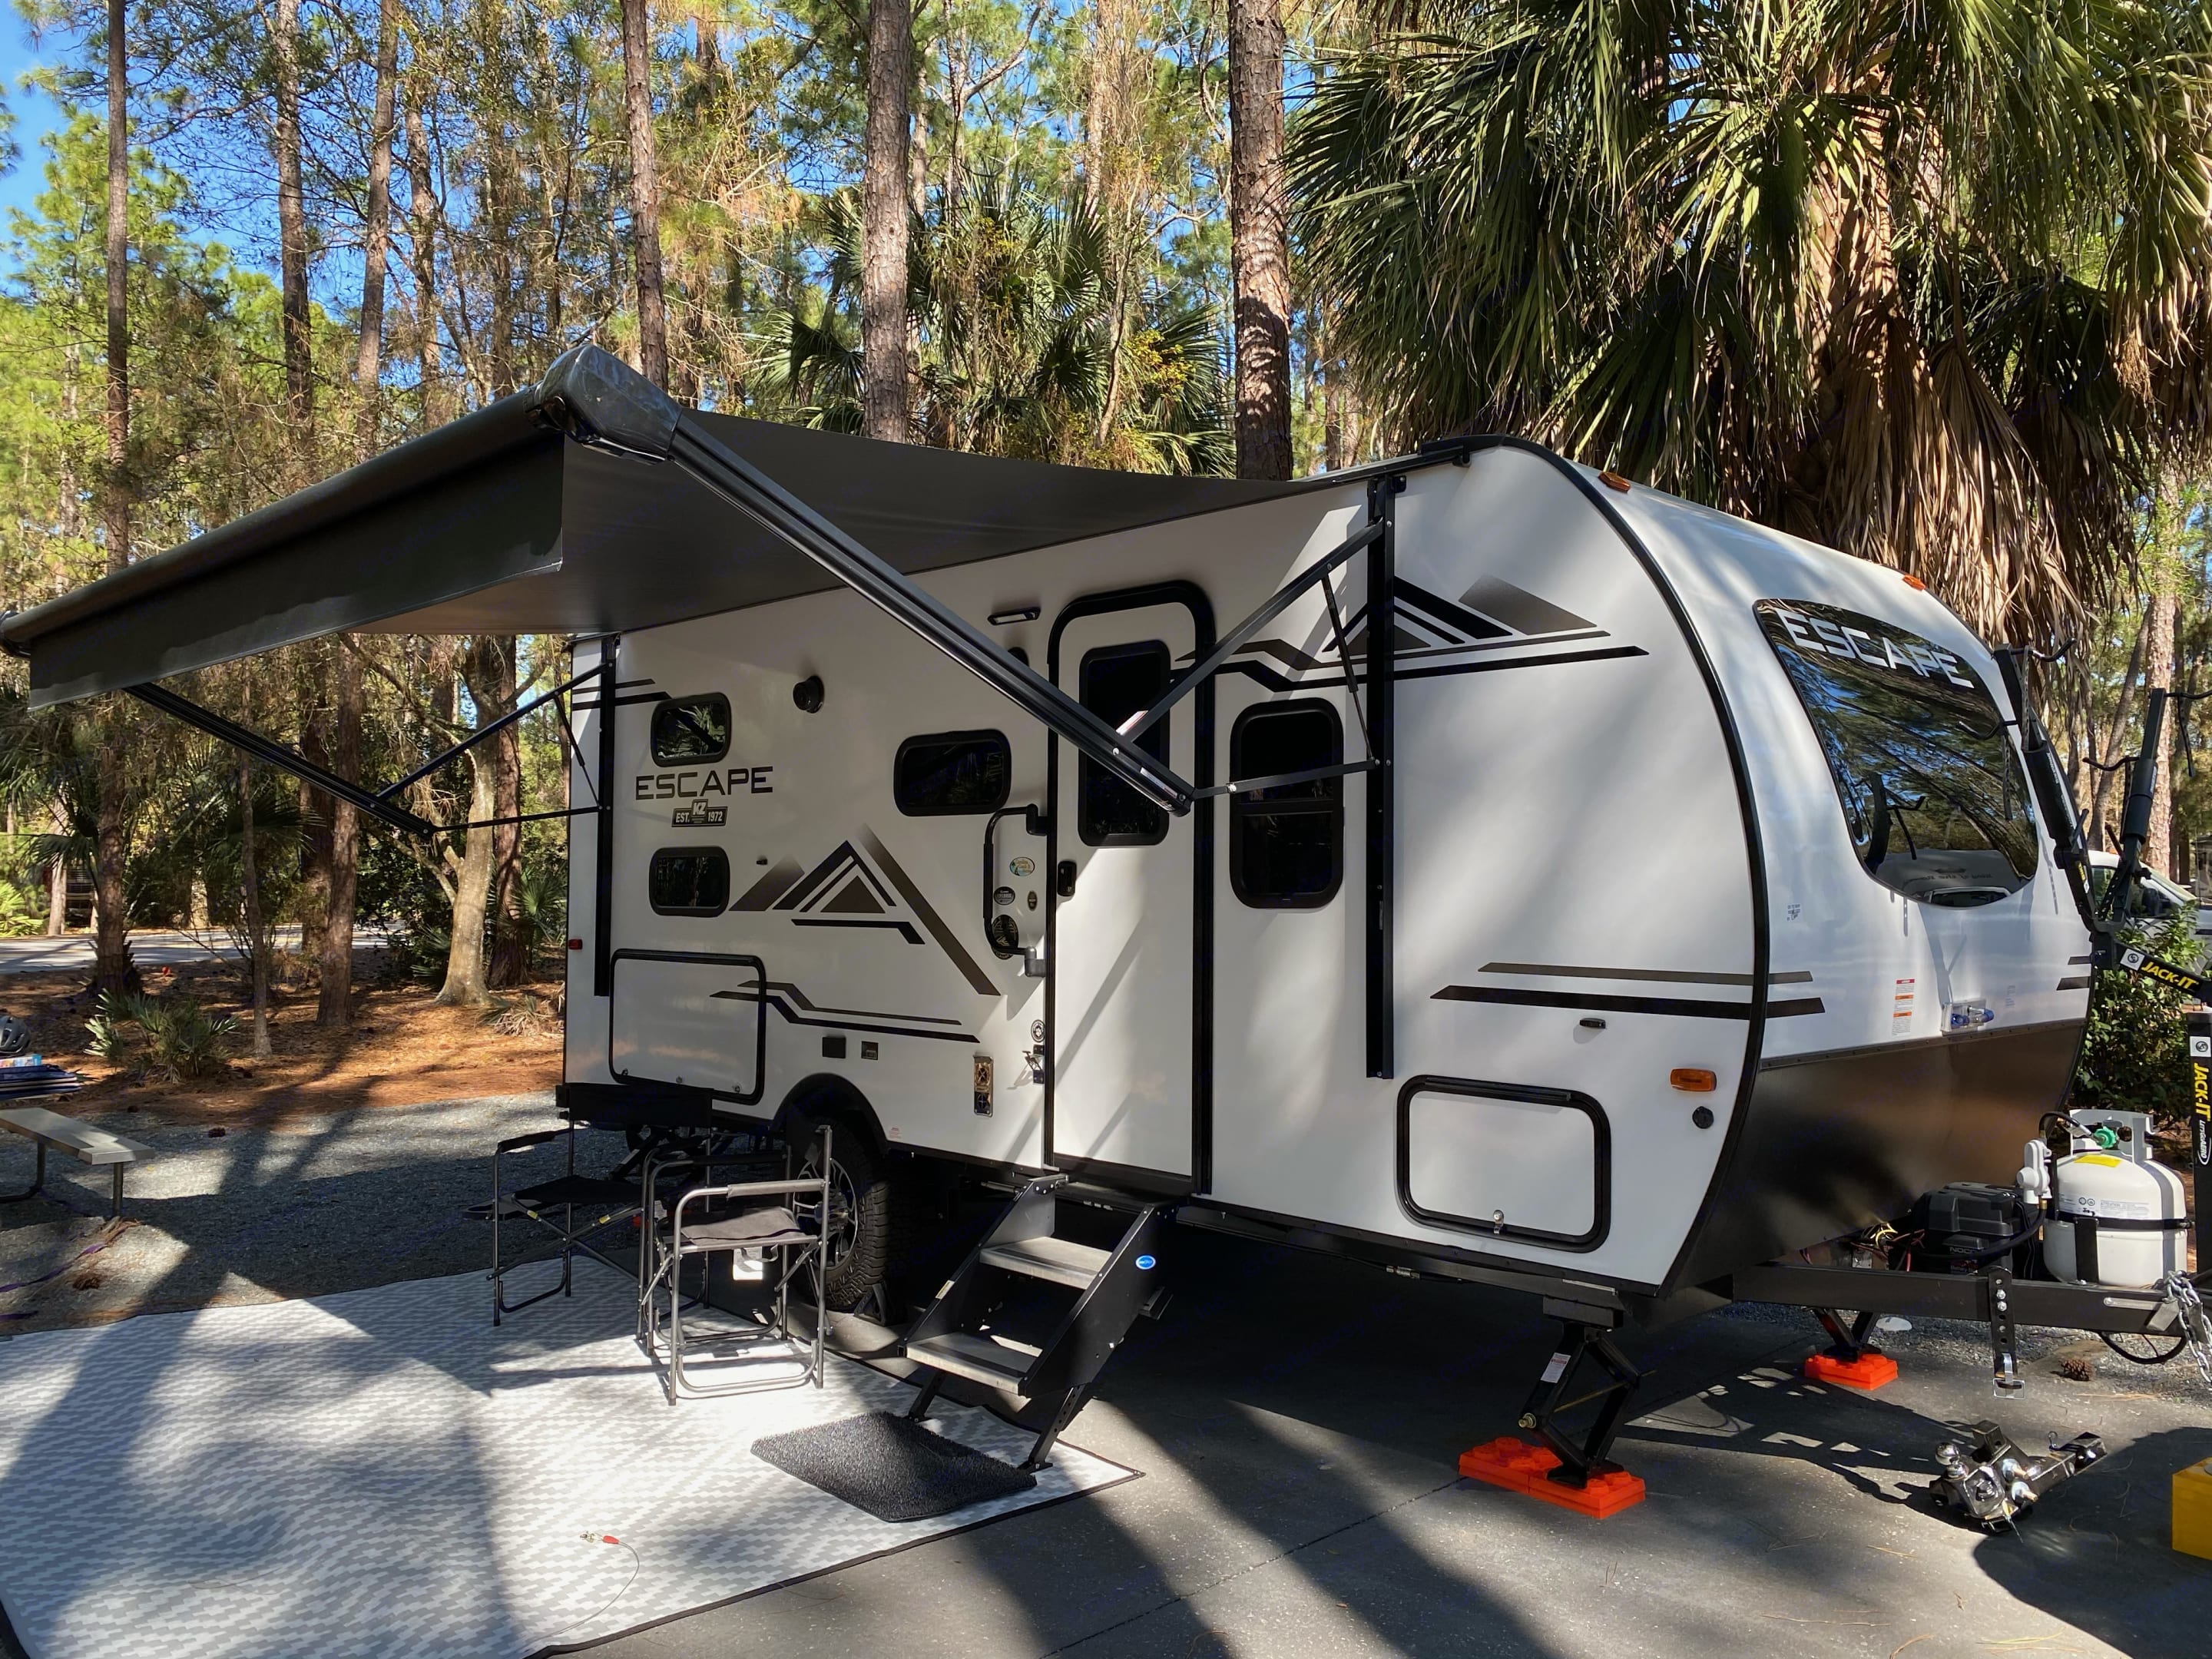 Our trailer has a great outdoor setup.  An extra long awning, outdoor speakers, and lights.. K-Z Manufacturing Escape 2021